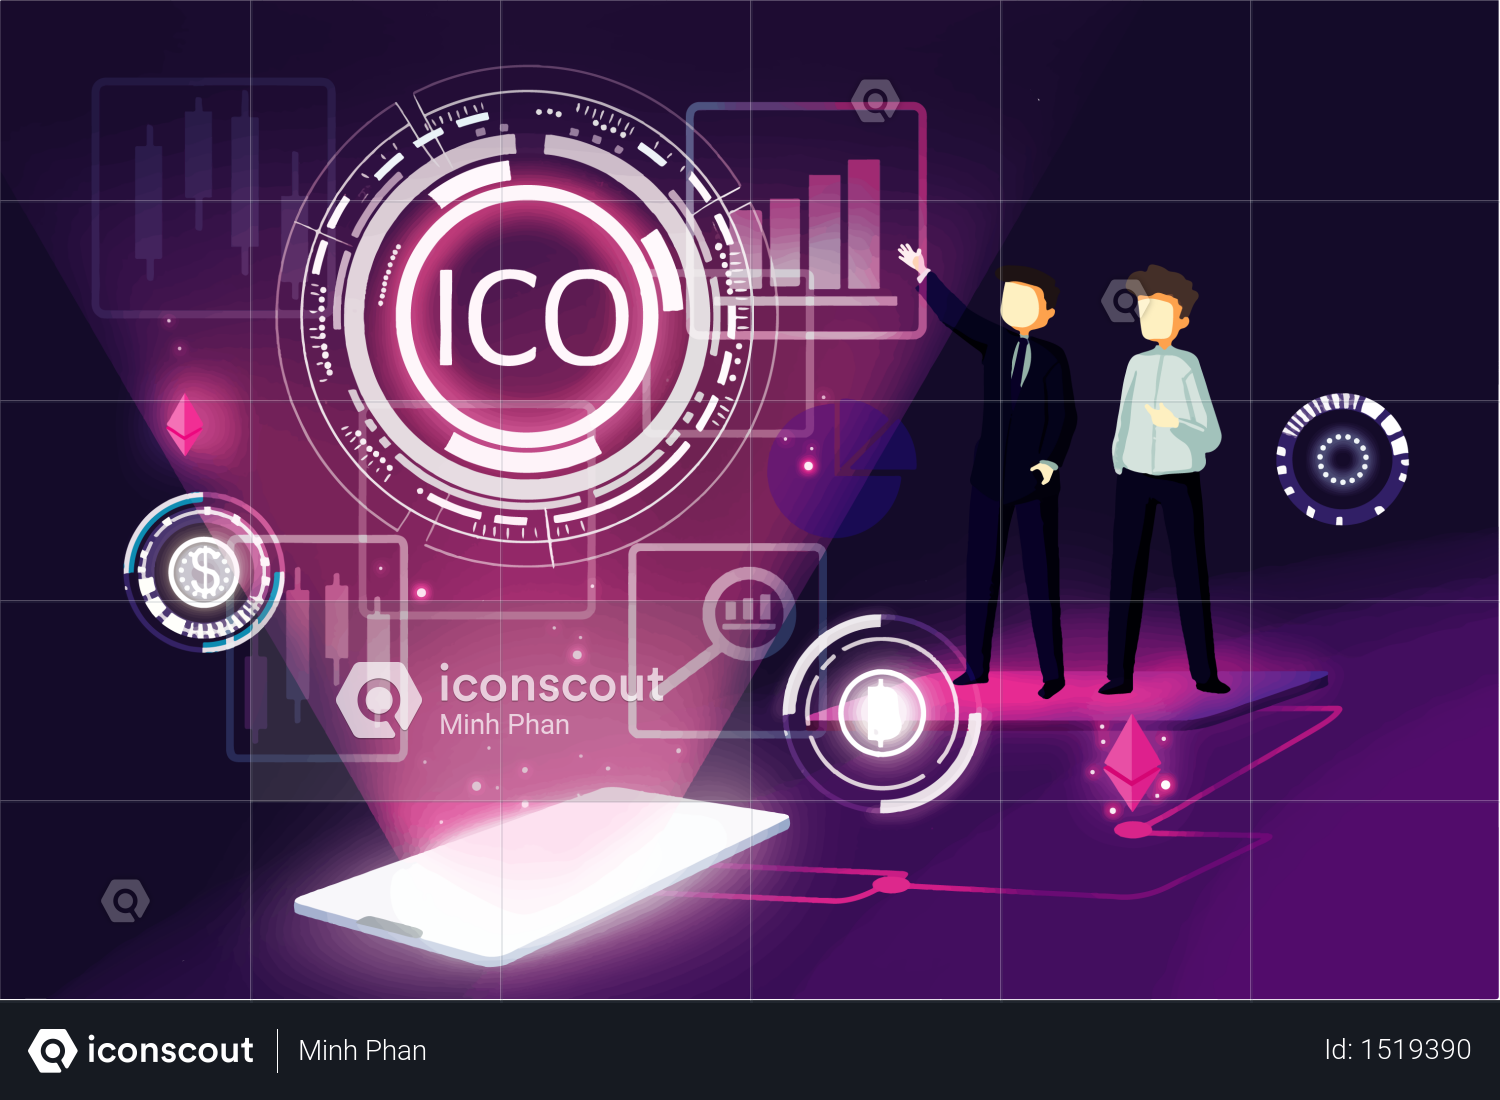 Premium Ico concept Illustration download in PNG & Vector